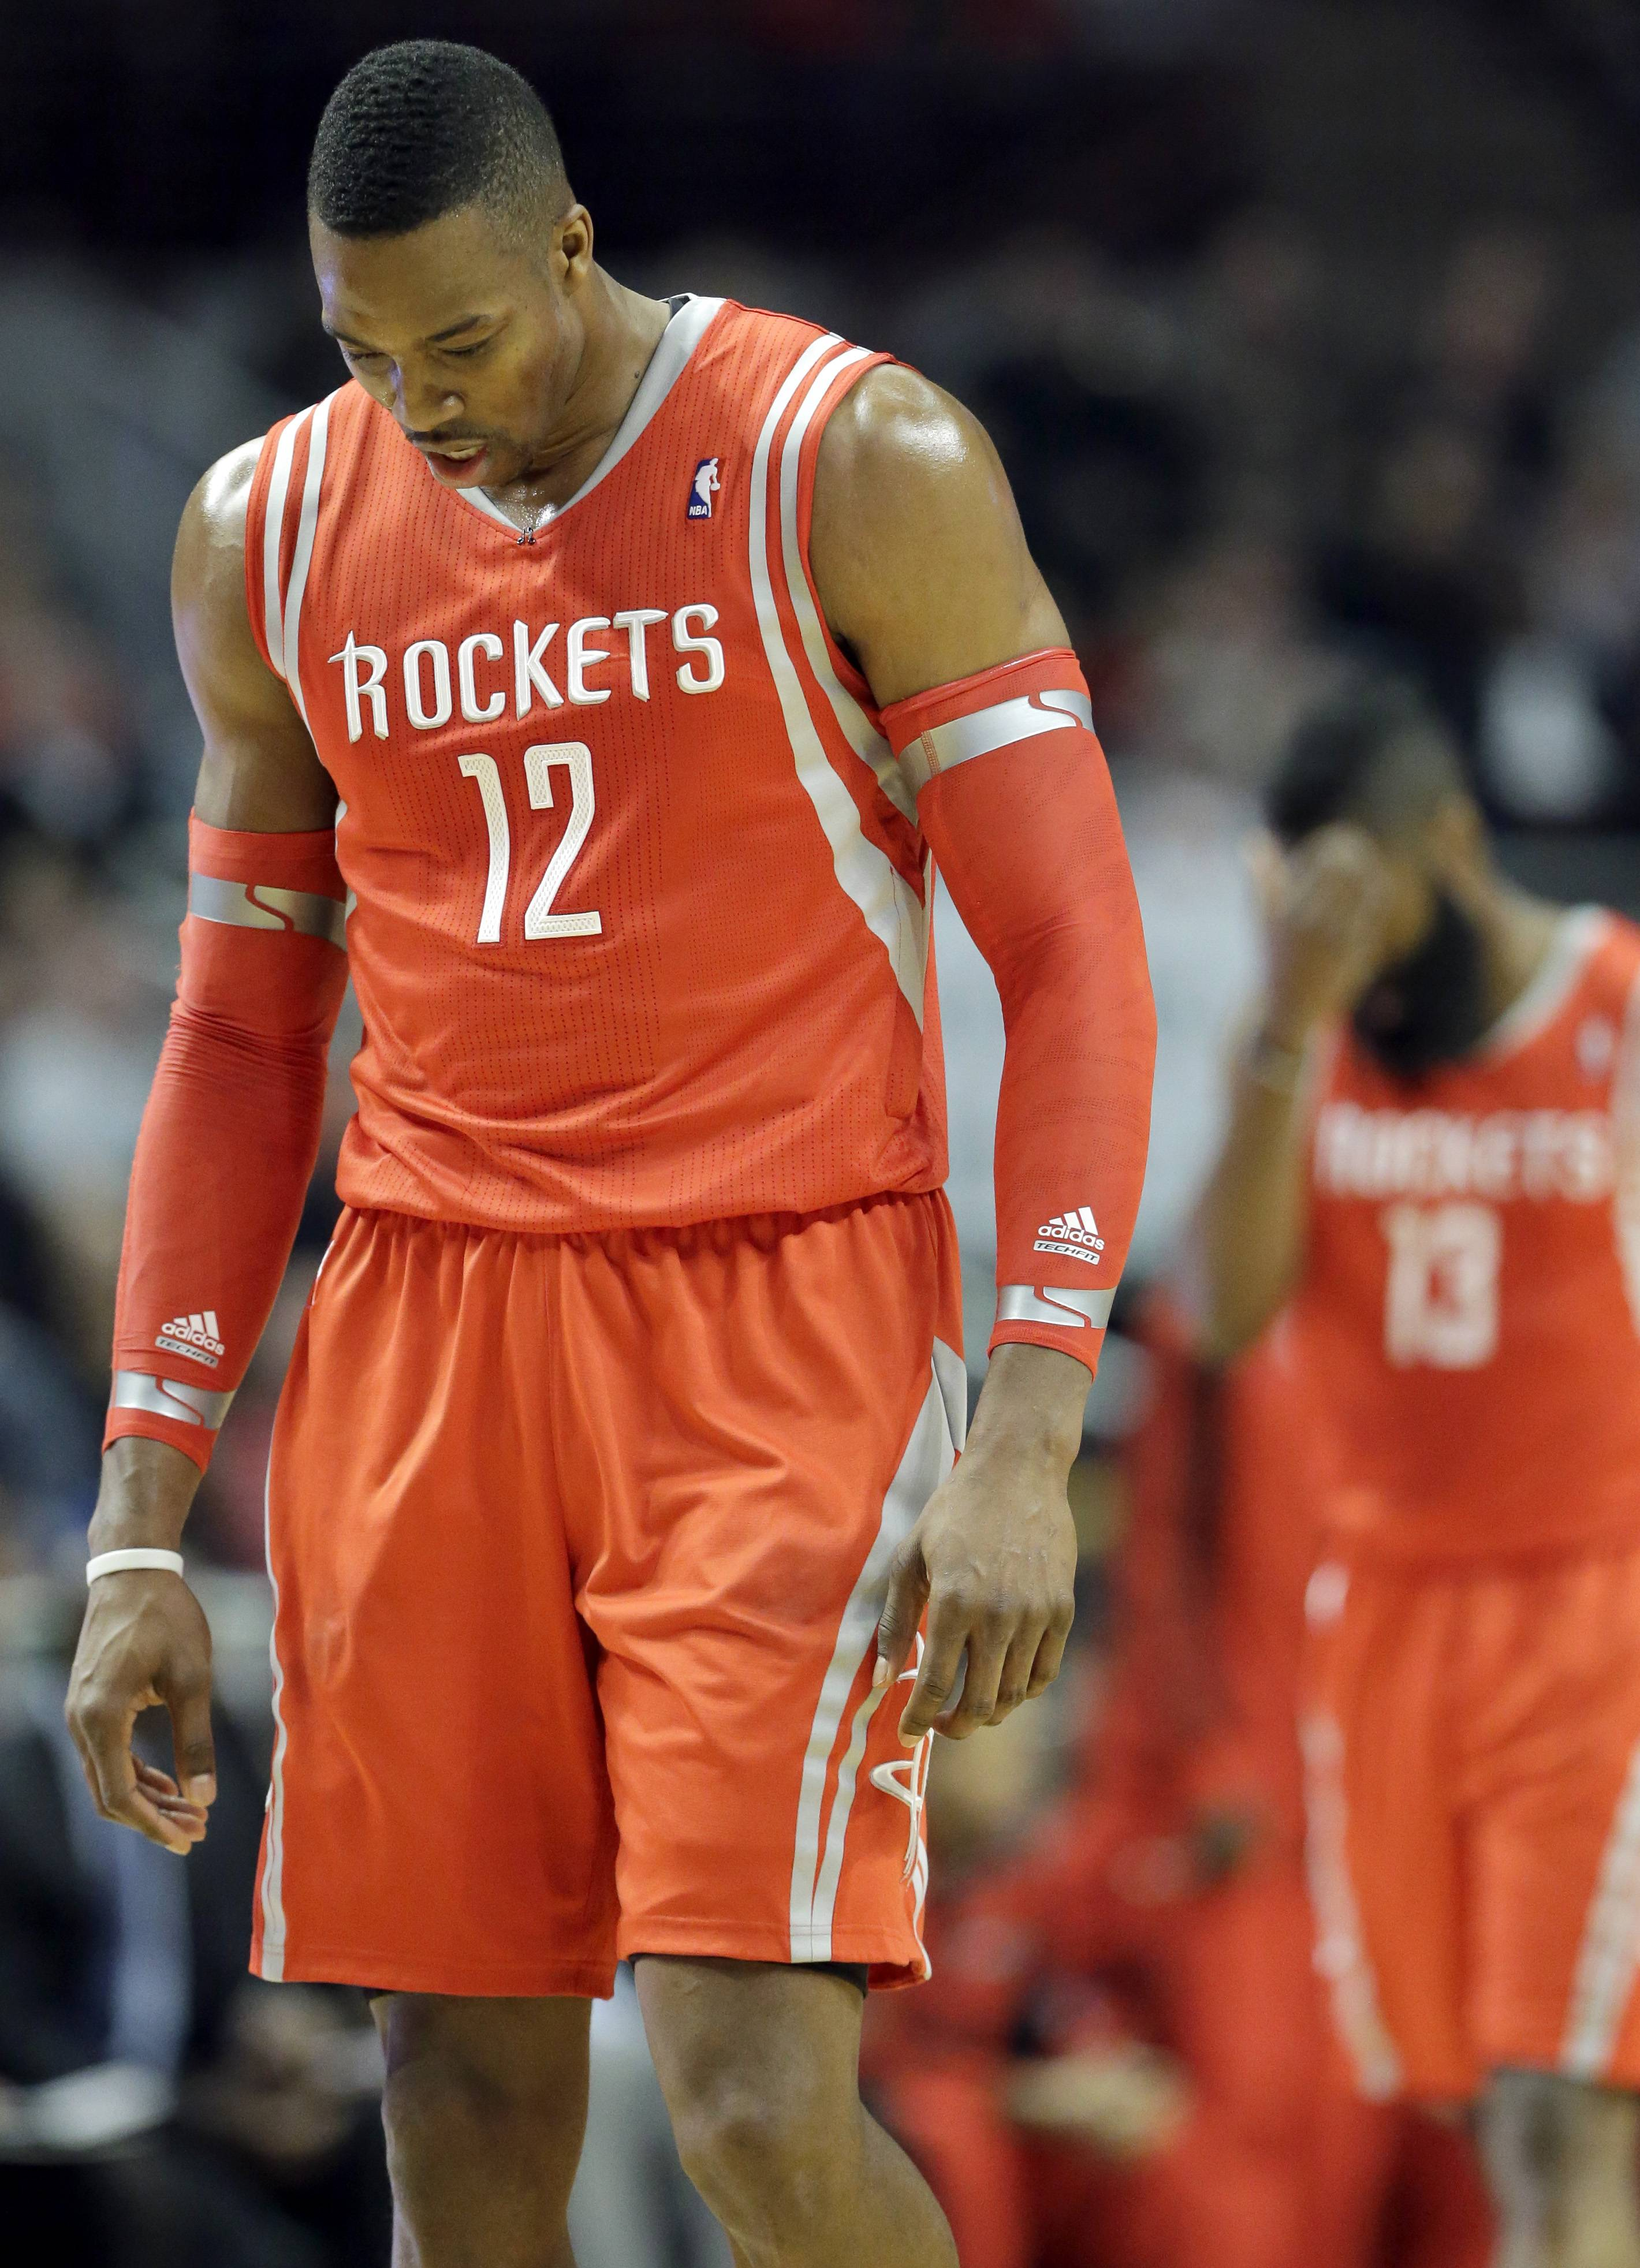 Houston Rockets forward Dwight Howard (12) and James Harden (13) walk back to the bench during the second half of an NBA basketball game against the Chicago Bulls in Chicago, Thursday, March 13, 2014. The Bulls won 111-87. (AP Photo/Nam Y. Huh)